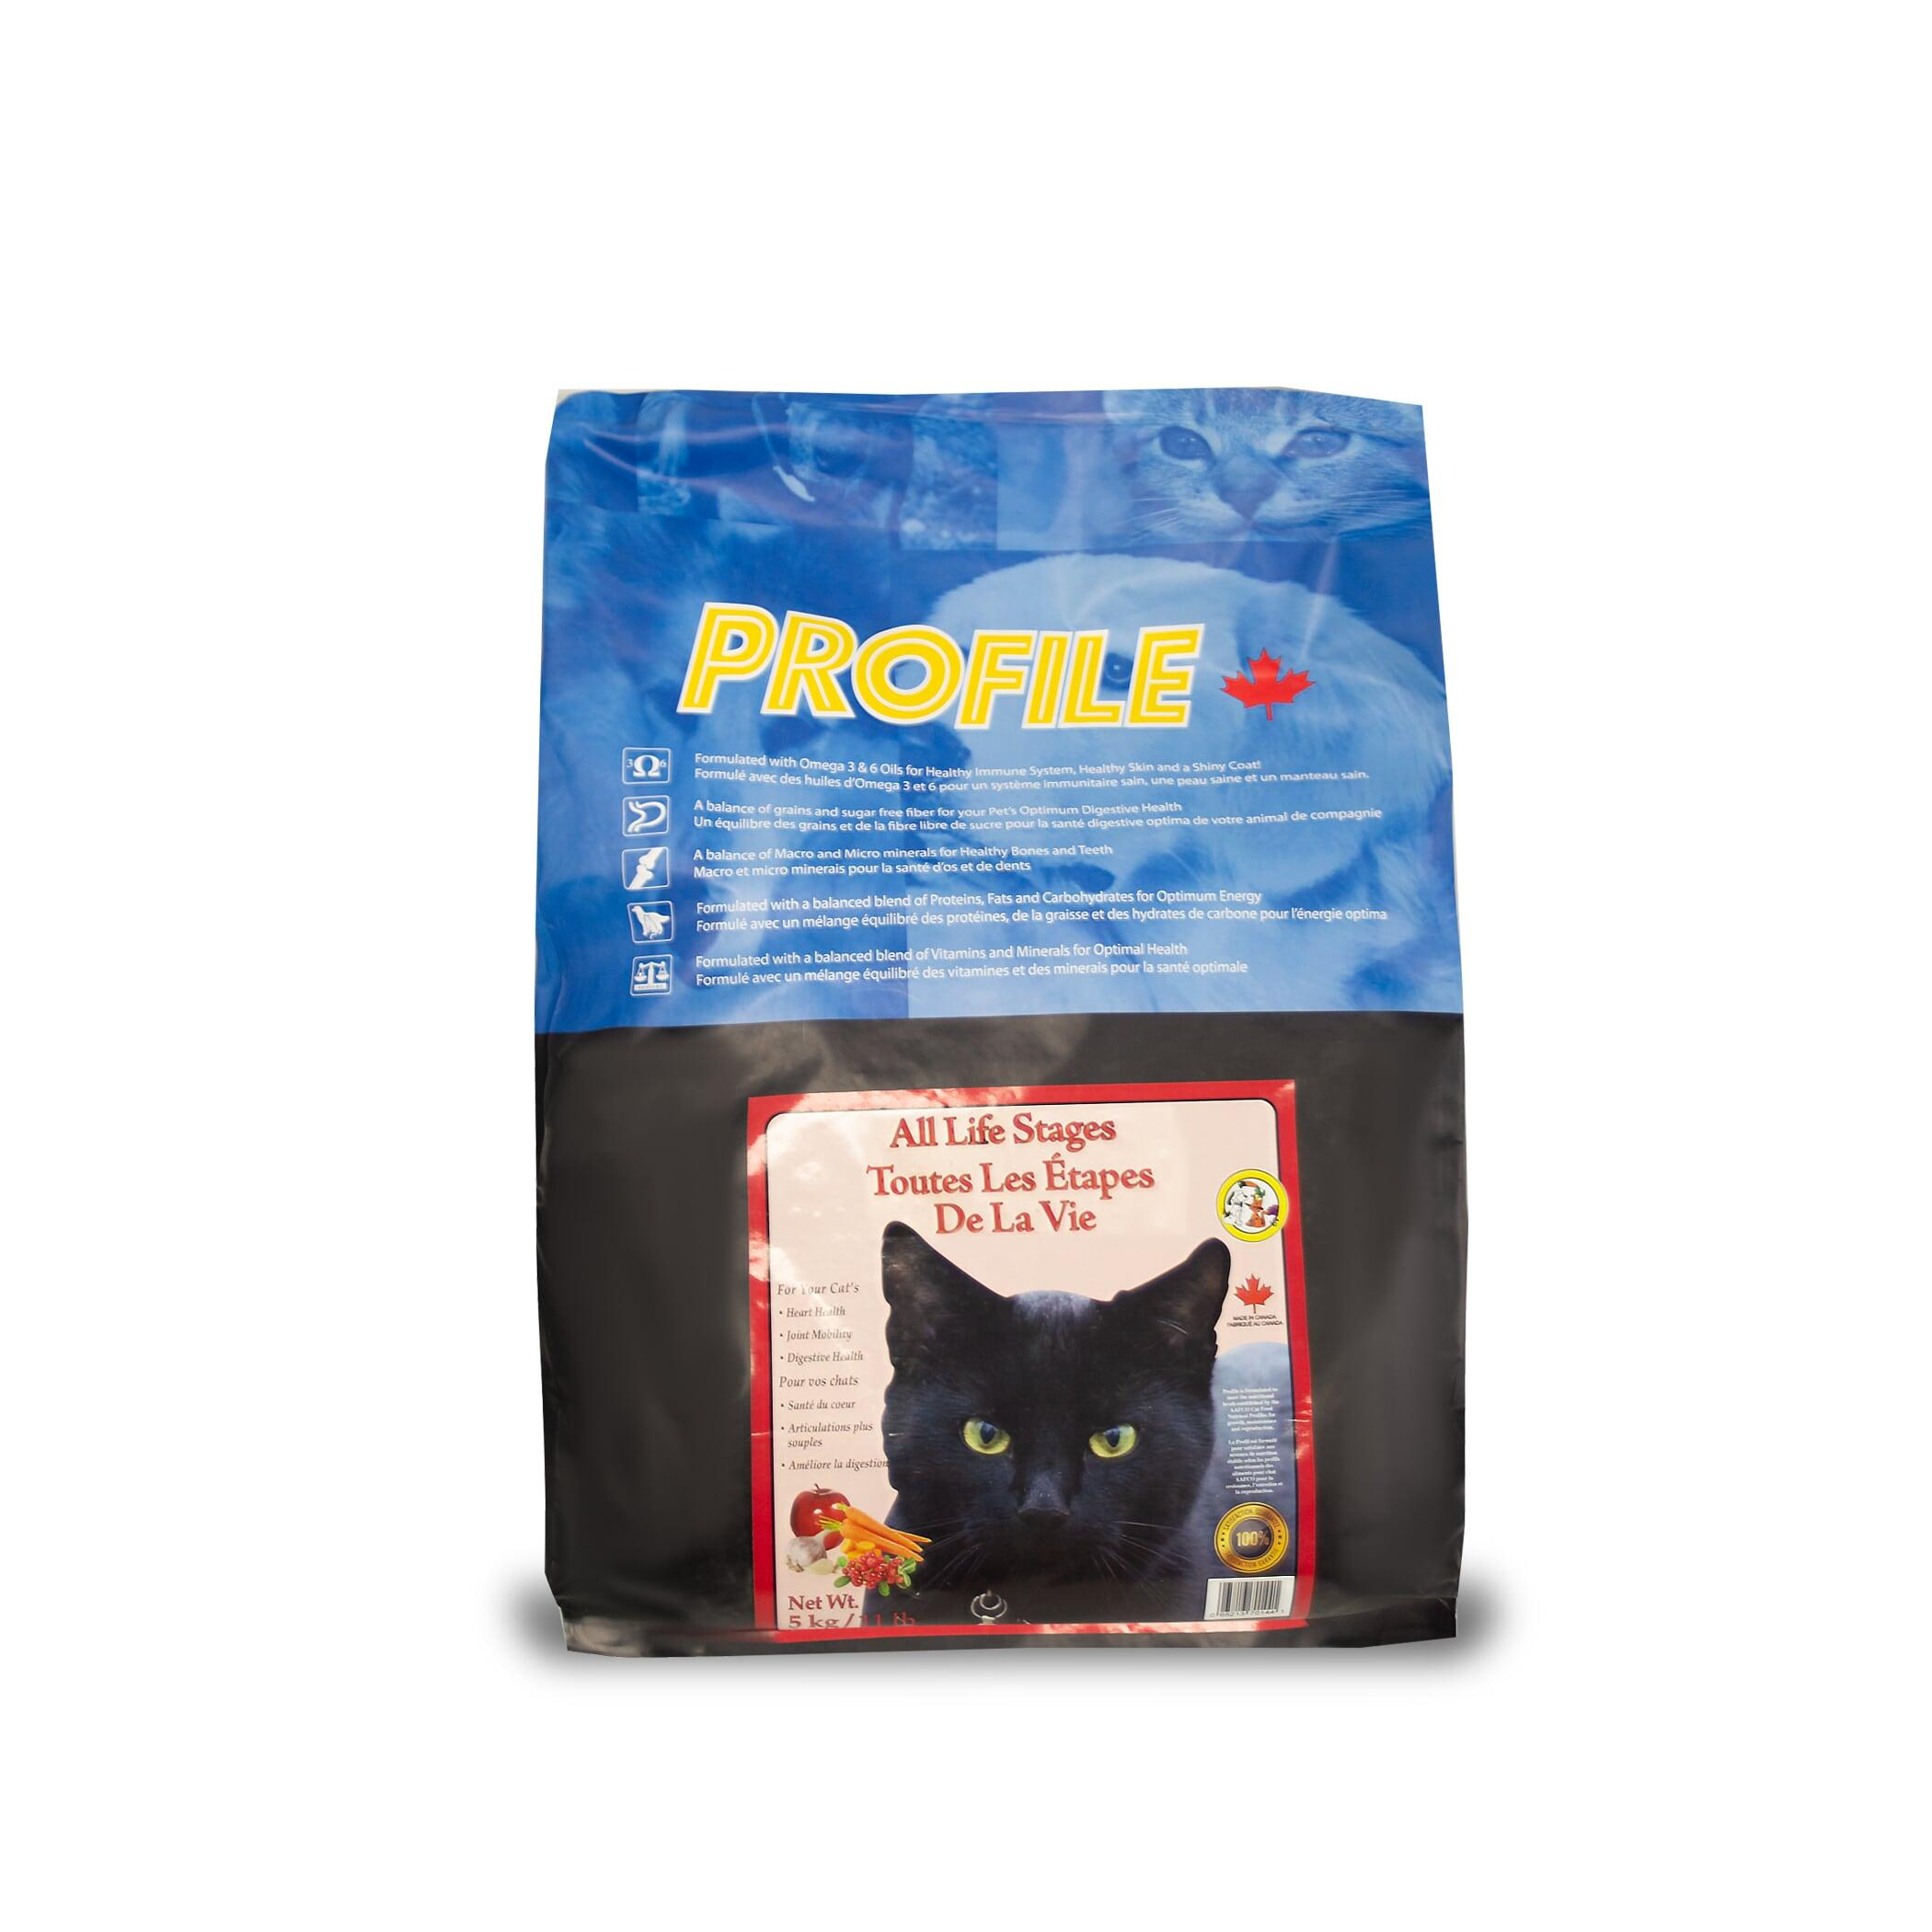 Profile All Life Stages Chicken Dry Cat Food, 5-kg